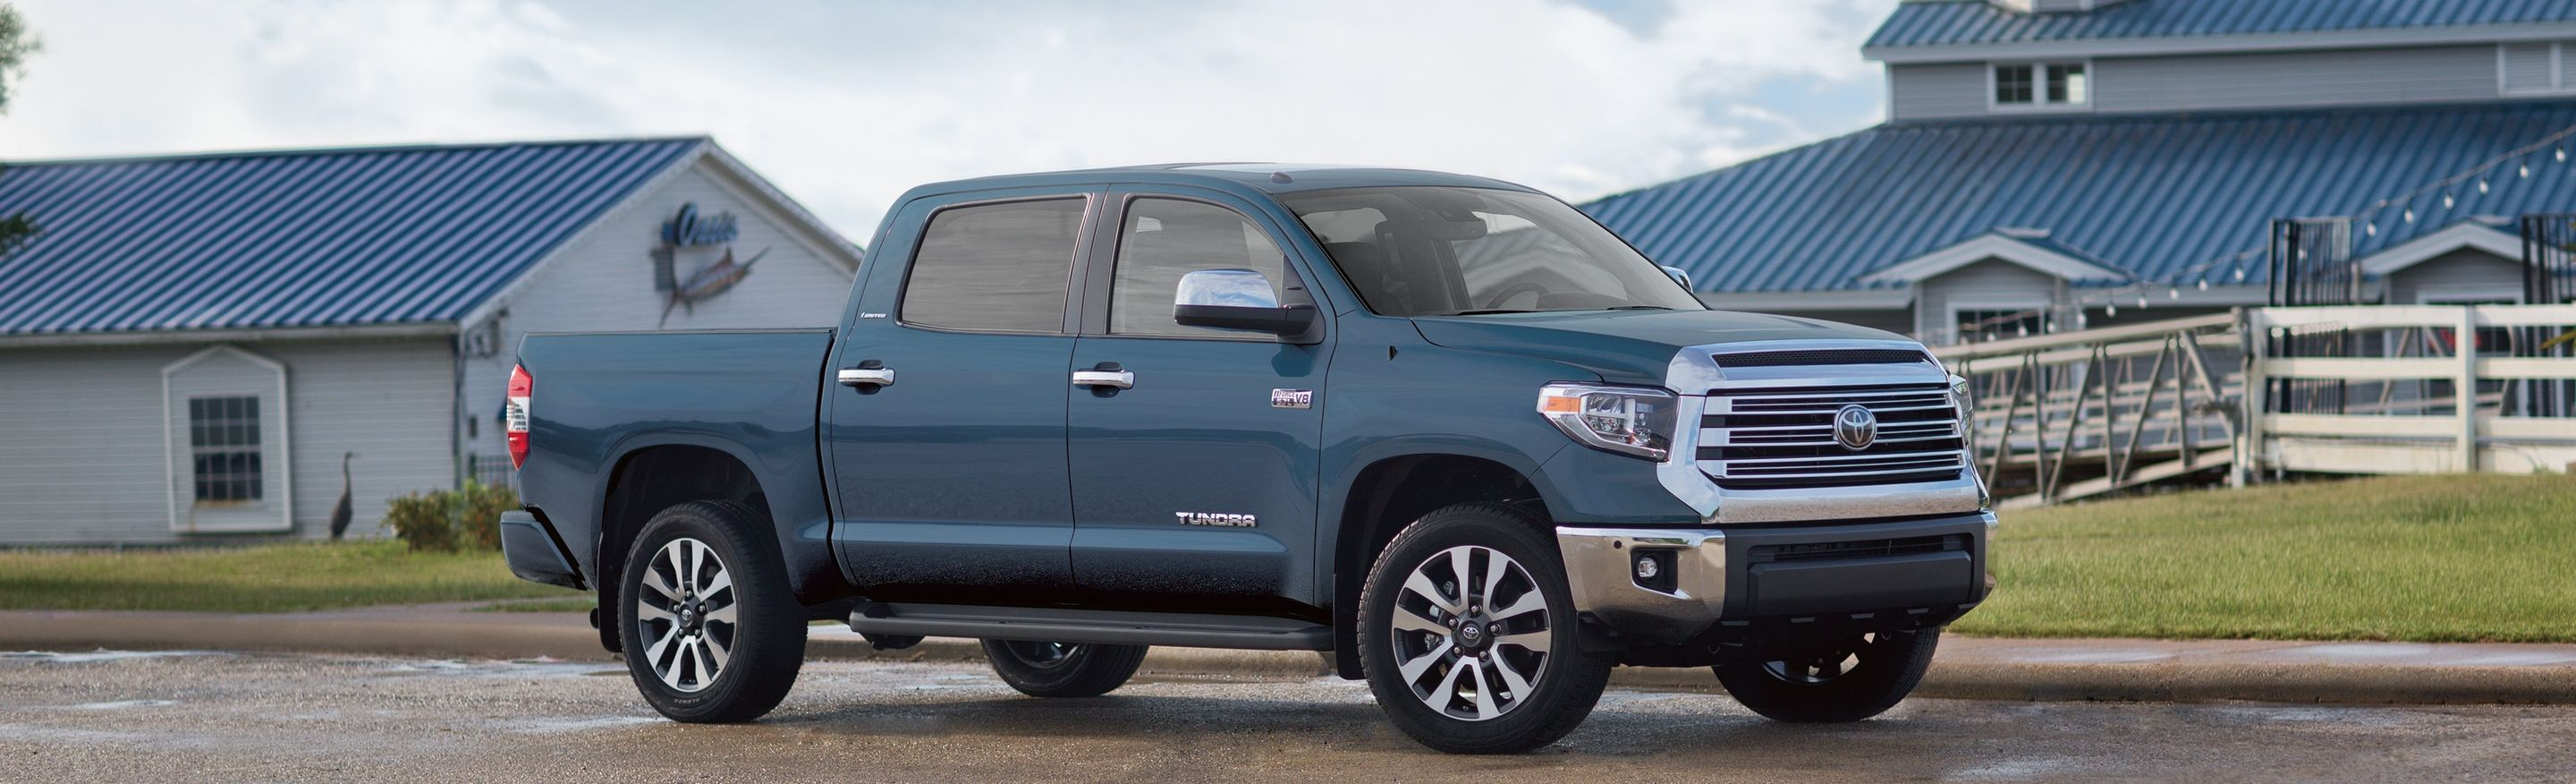 2019 Toyota Tundra for Sale near Lenexa, KS